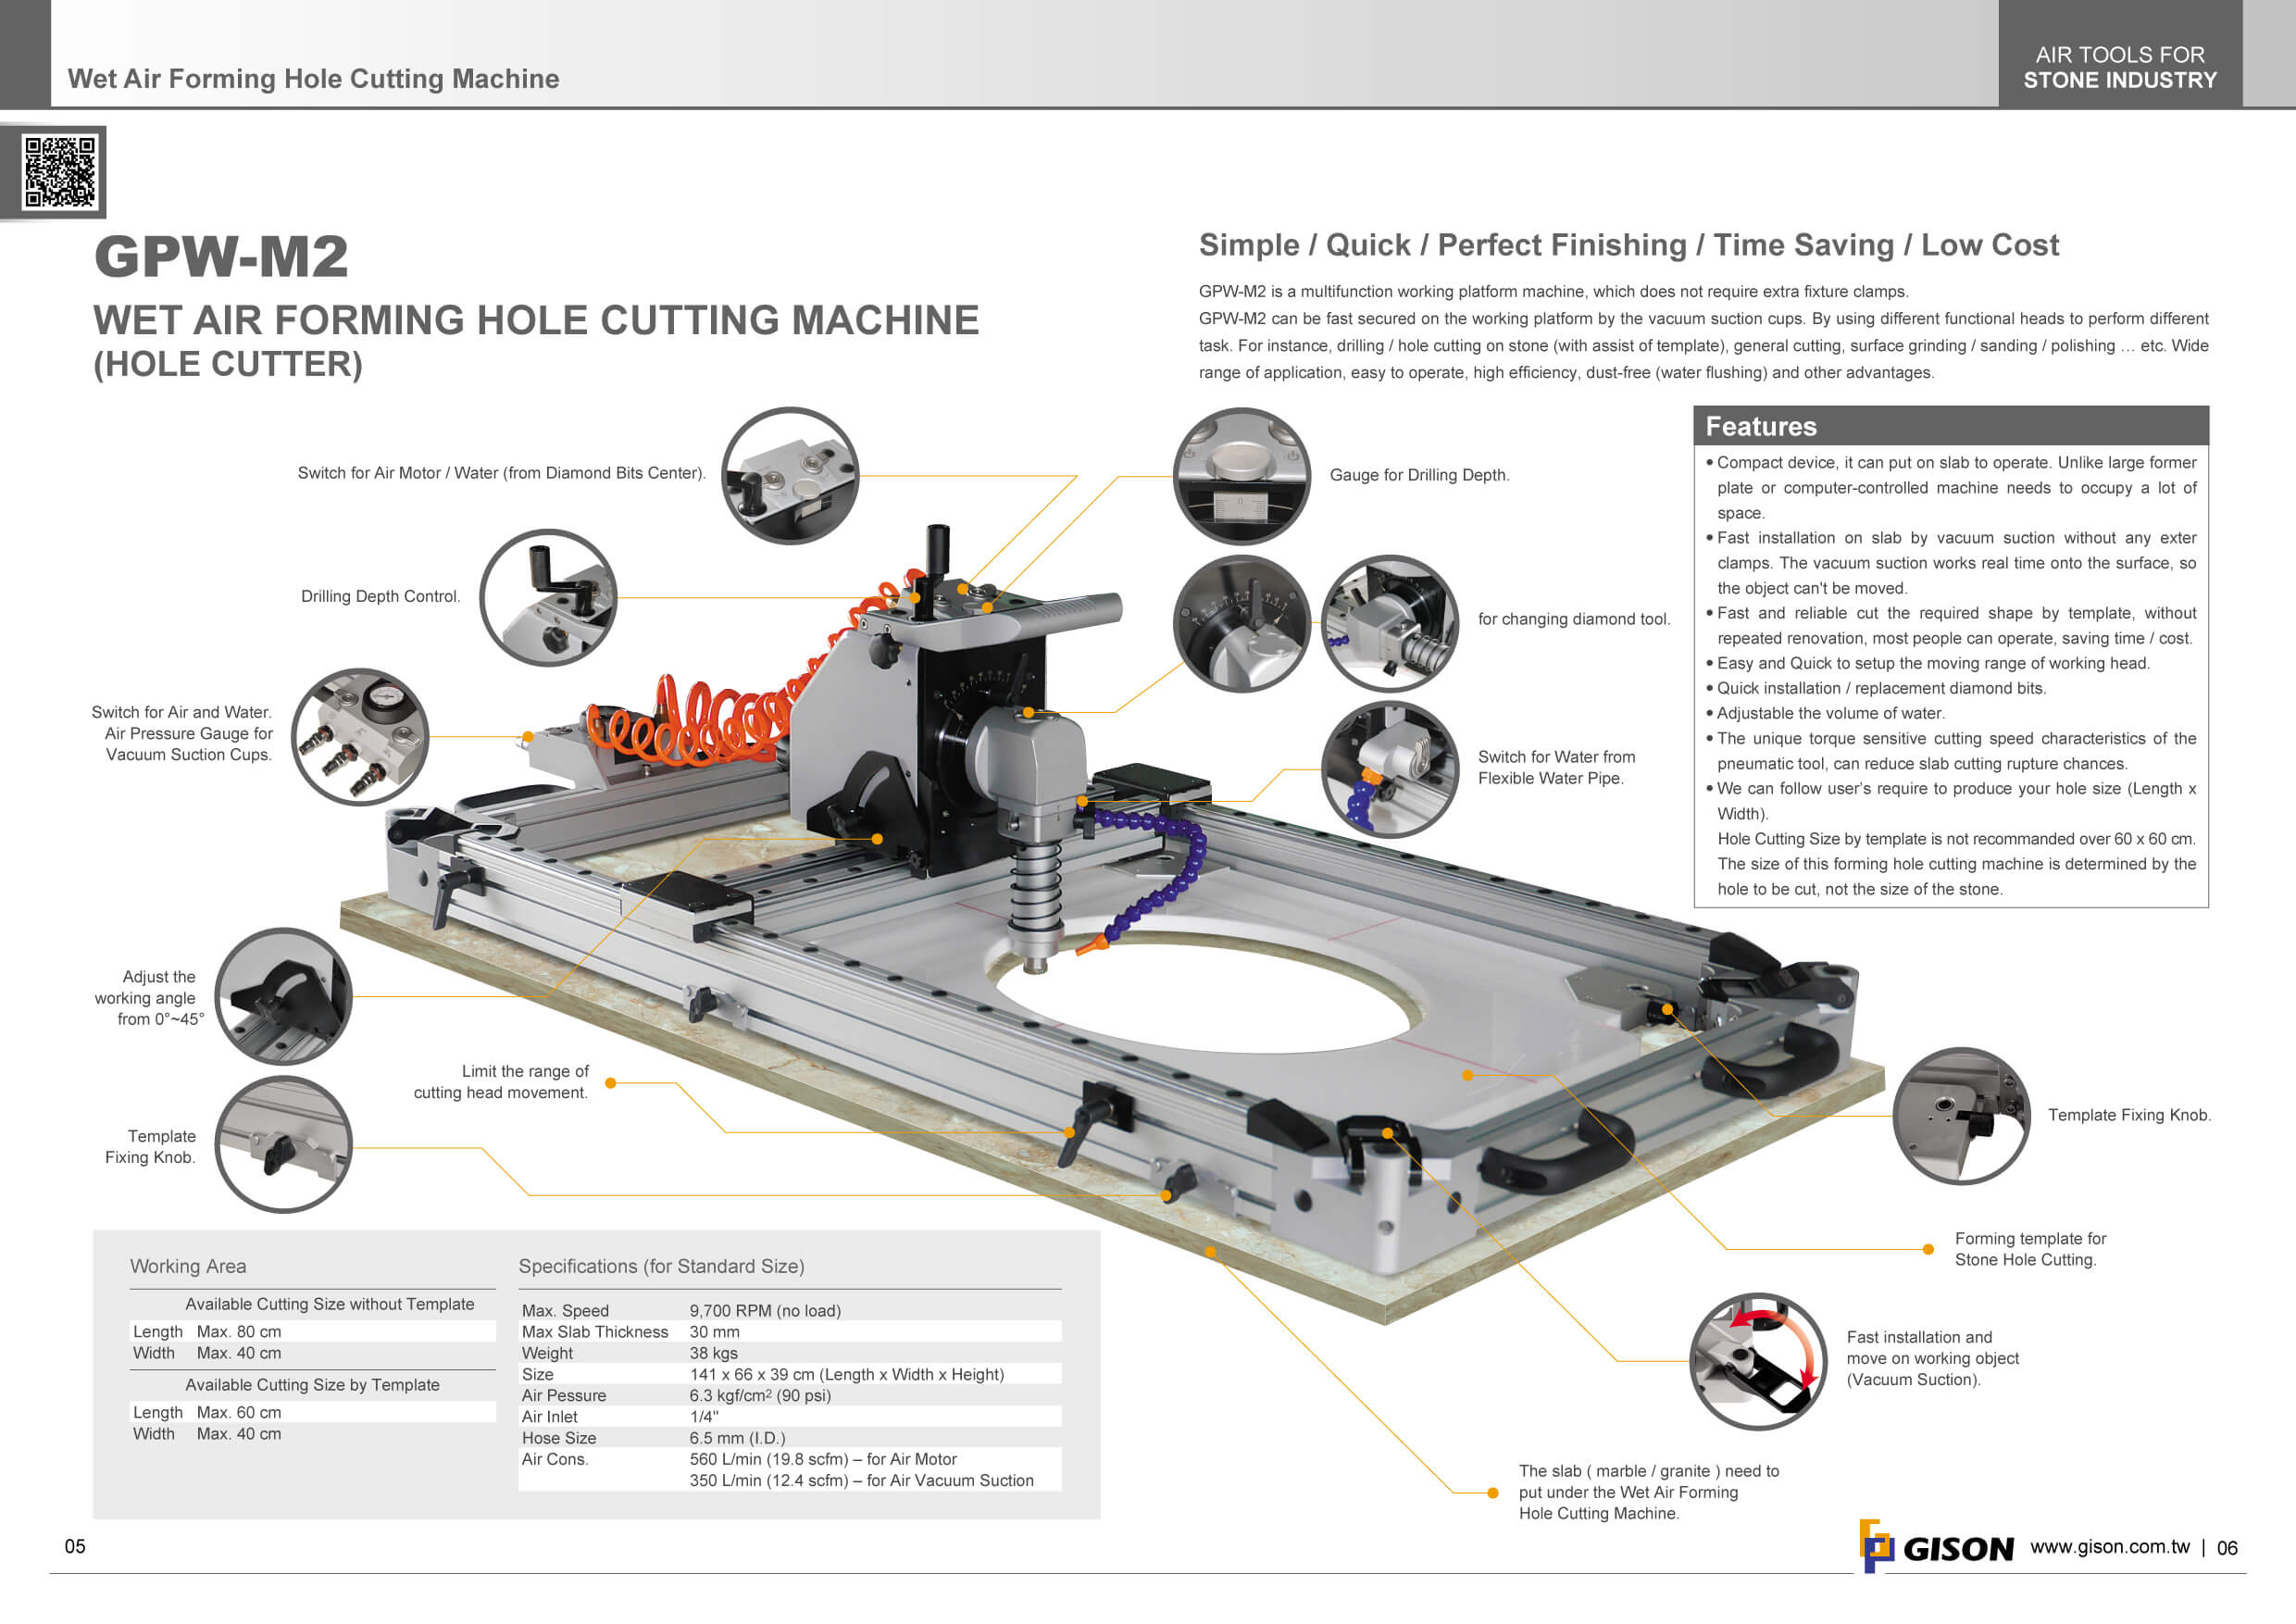 2018 GISON Wet Air Tools for Stone,Marble,Granite Industry Catalog